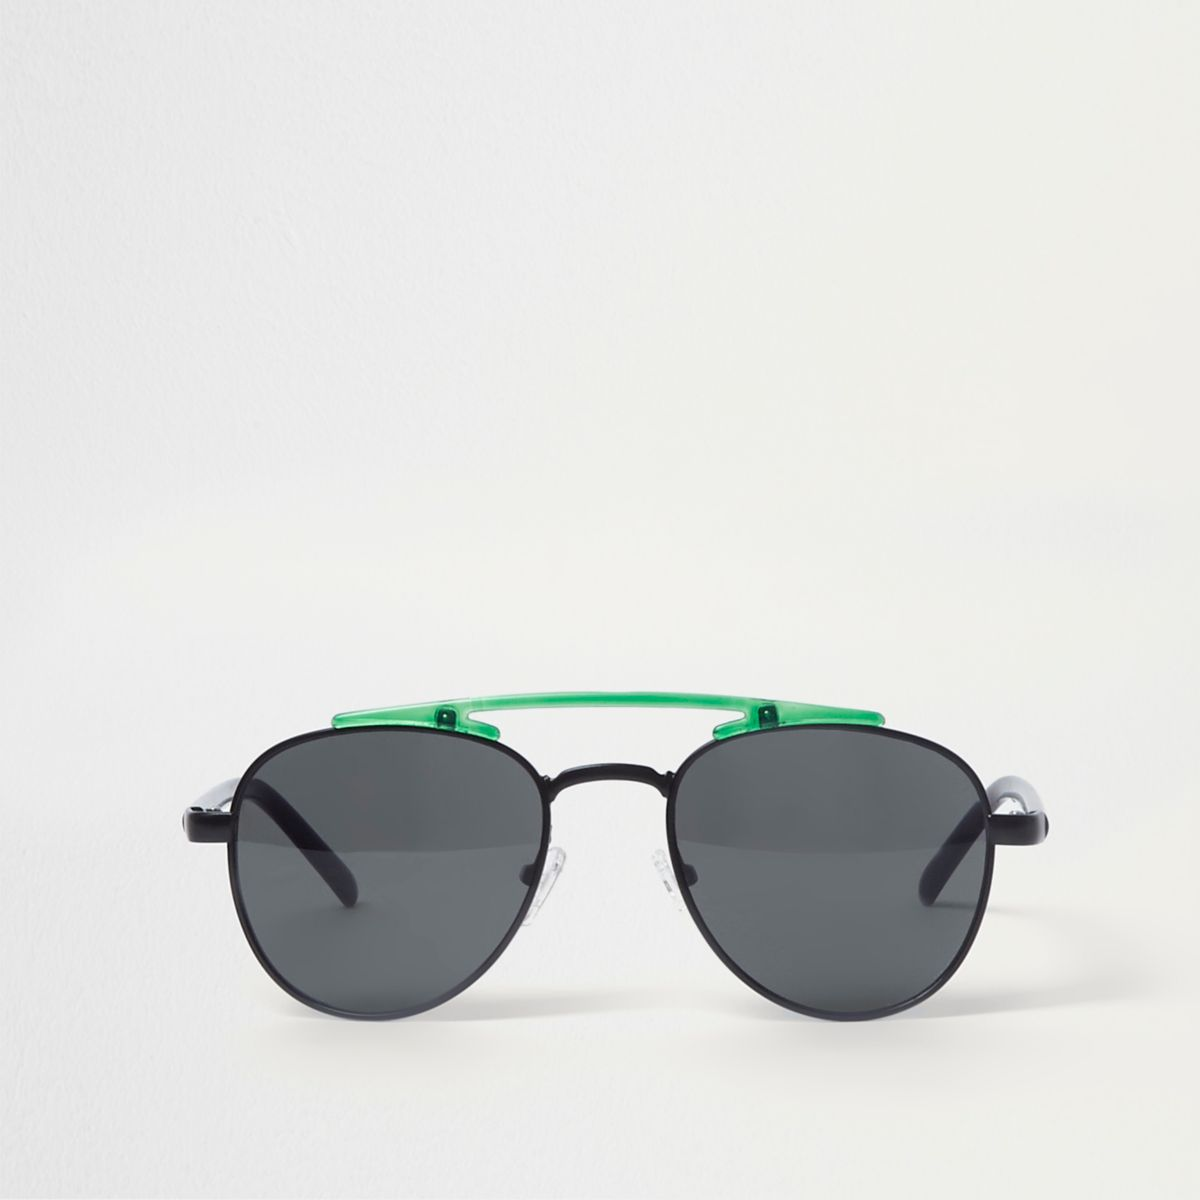 Black lens green brow bar aviator sunglasses